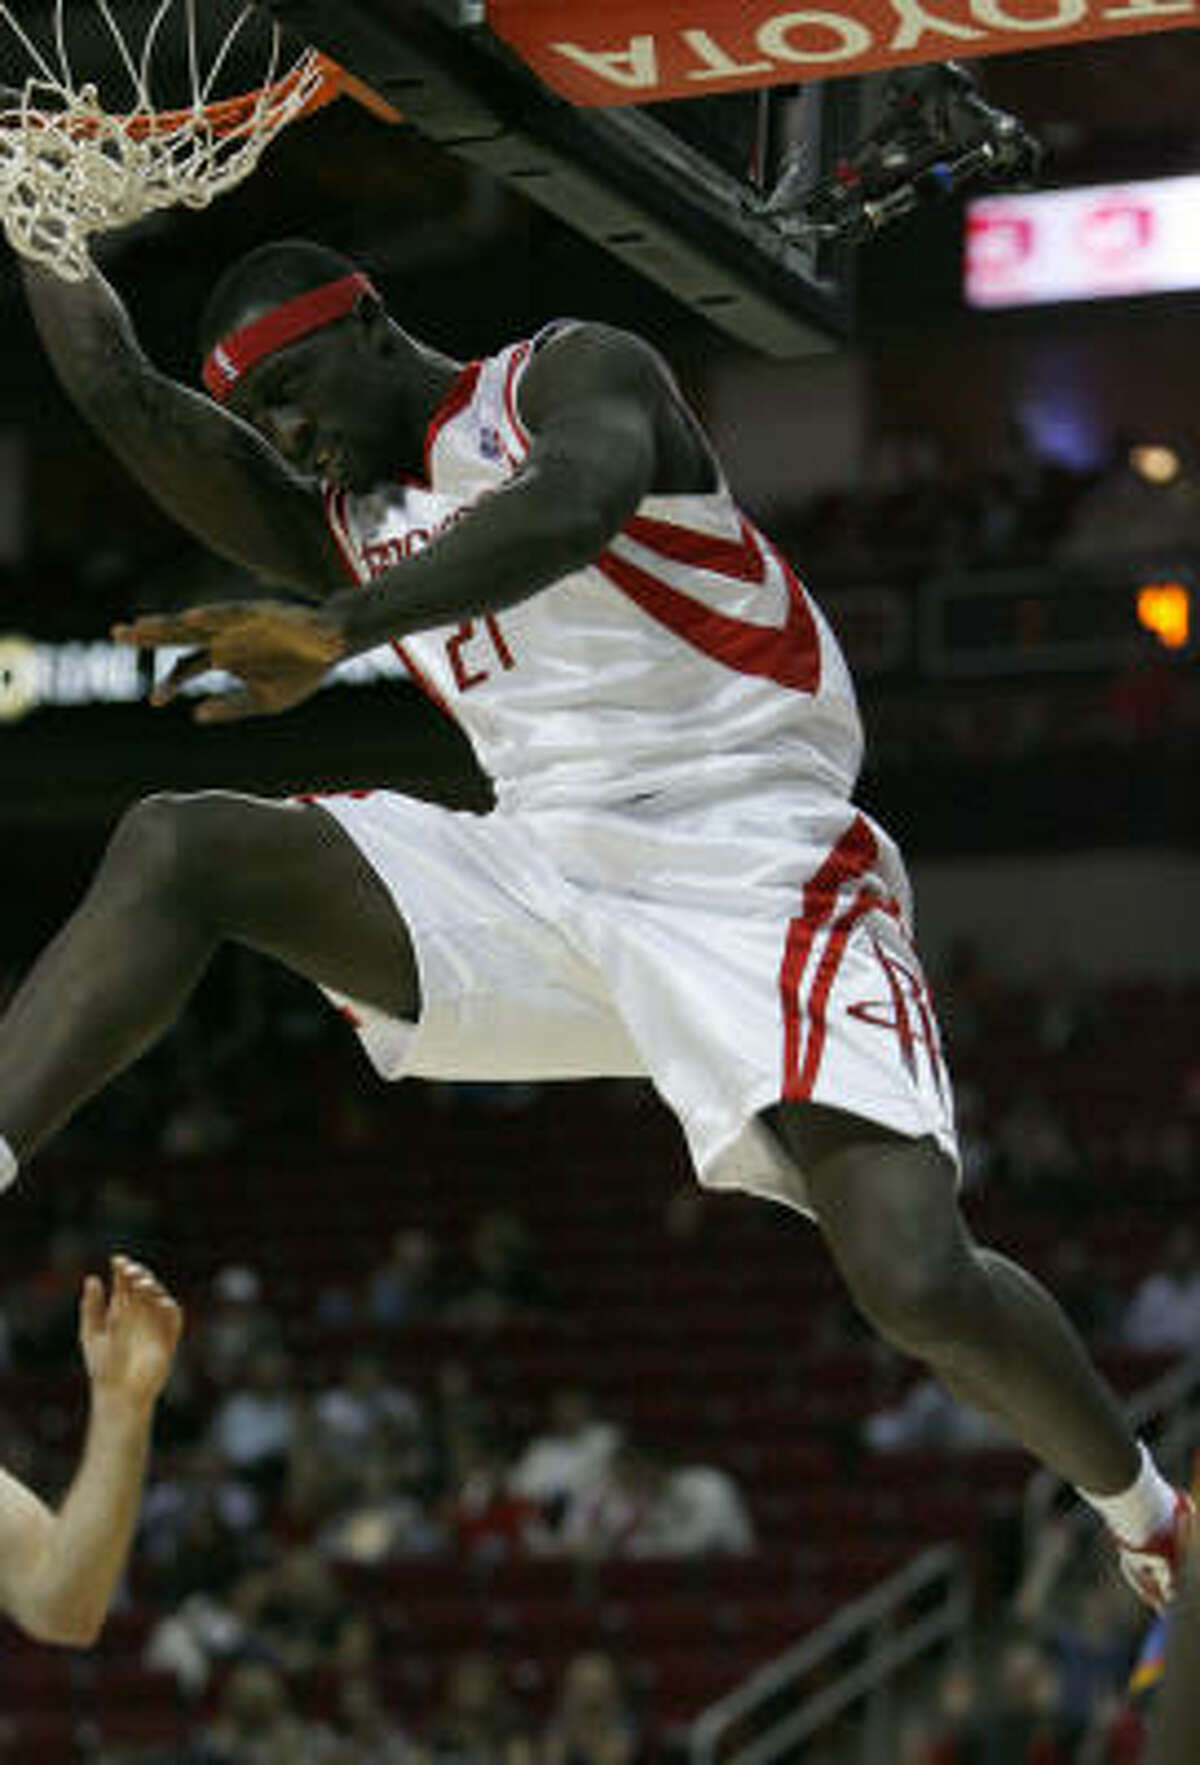 Pops Mensah-Bonsu throws one down for two of his 13 points that he scored in just 16 minutes.